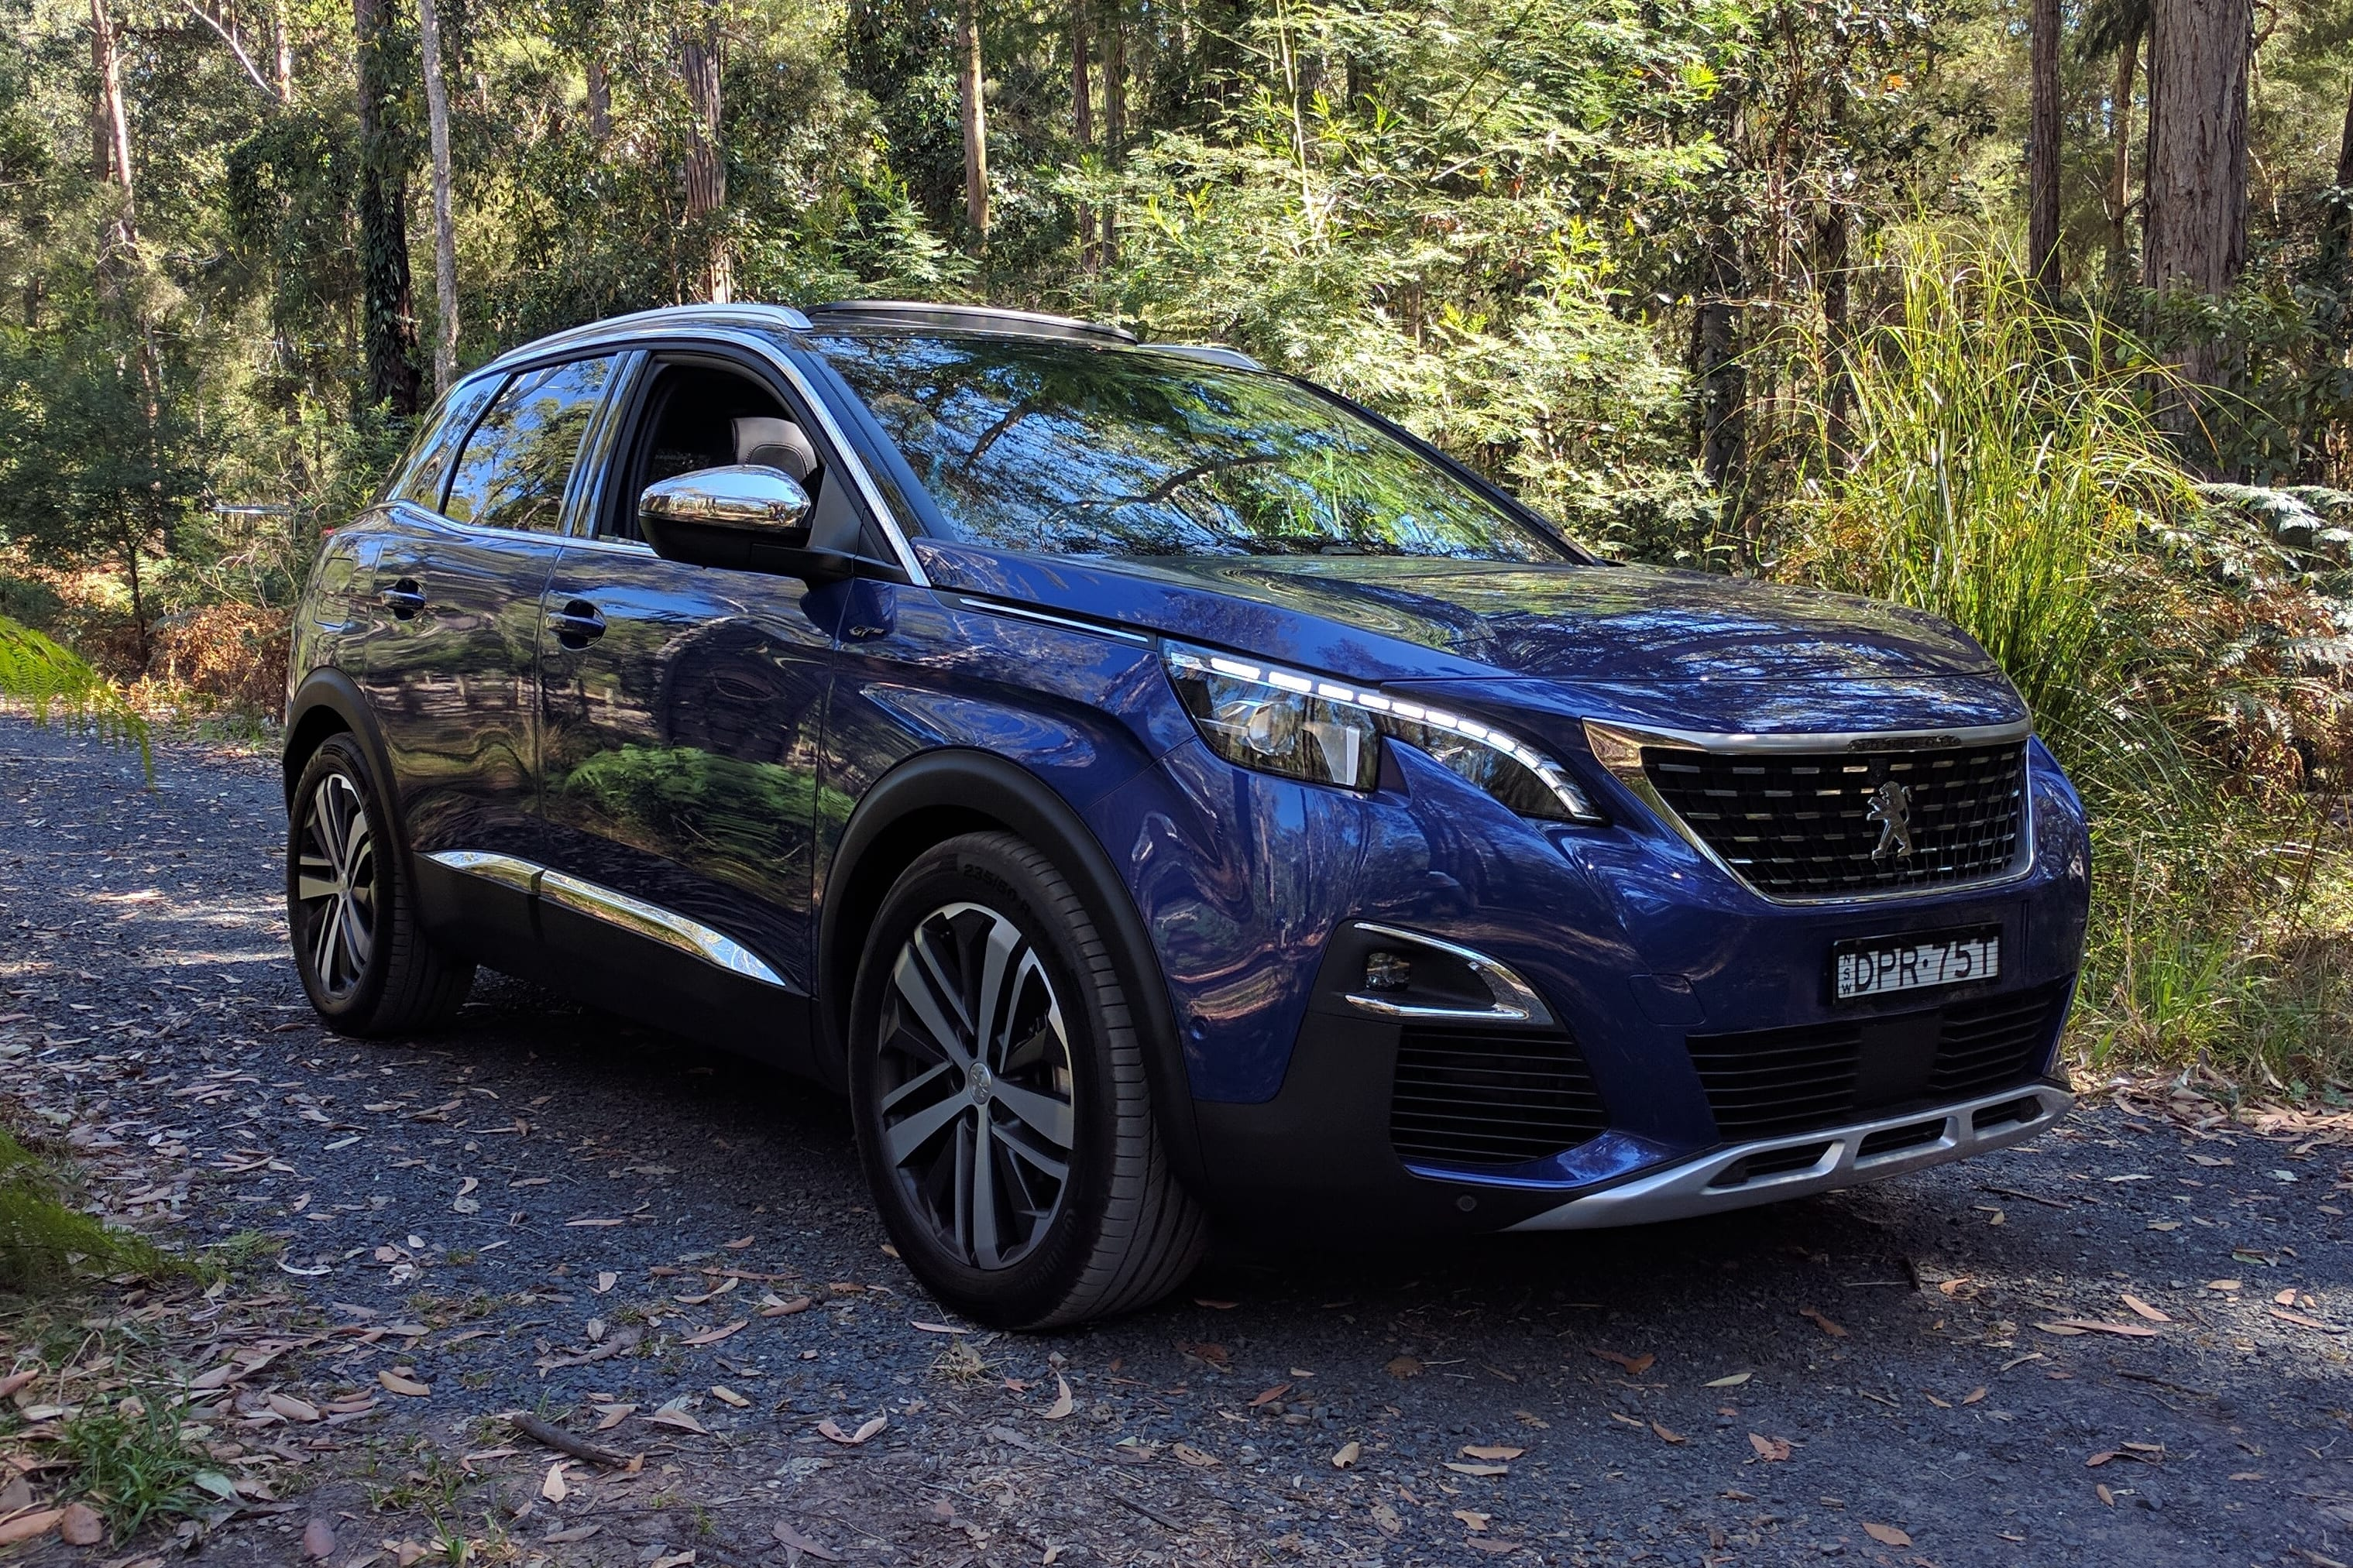 3008 peugeot gt magnetic suv carsguide test cars range weekend